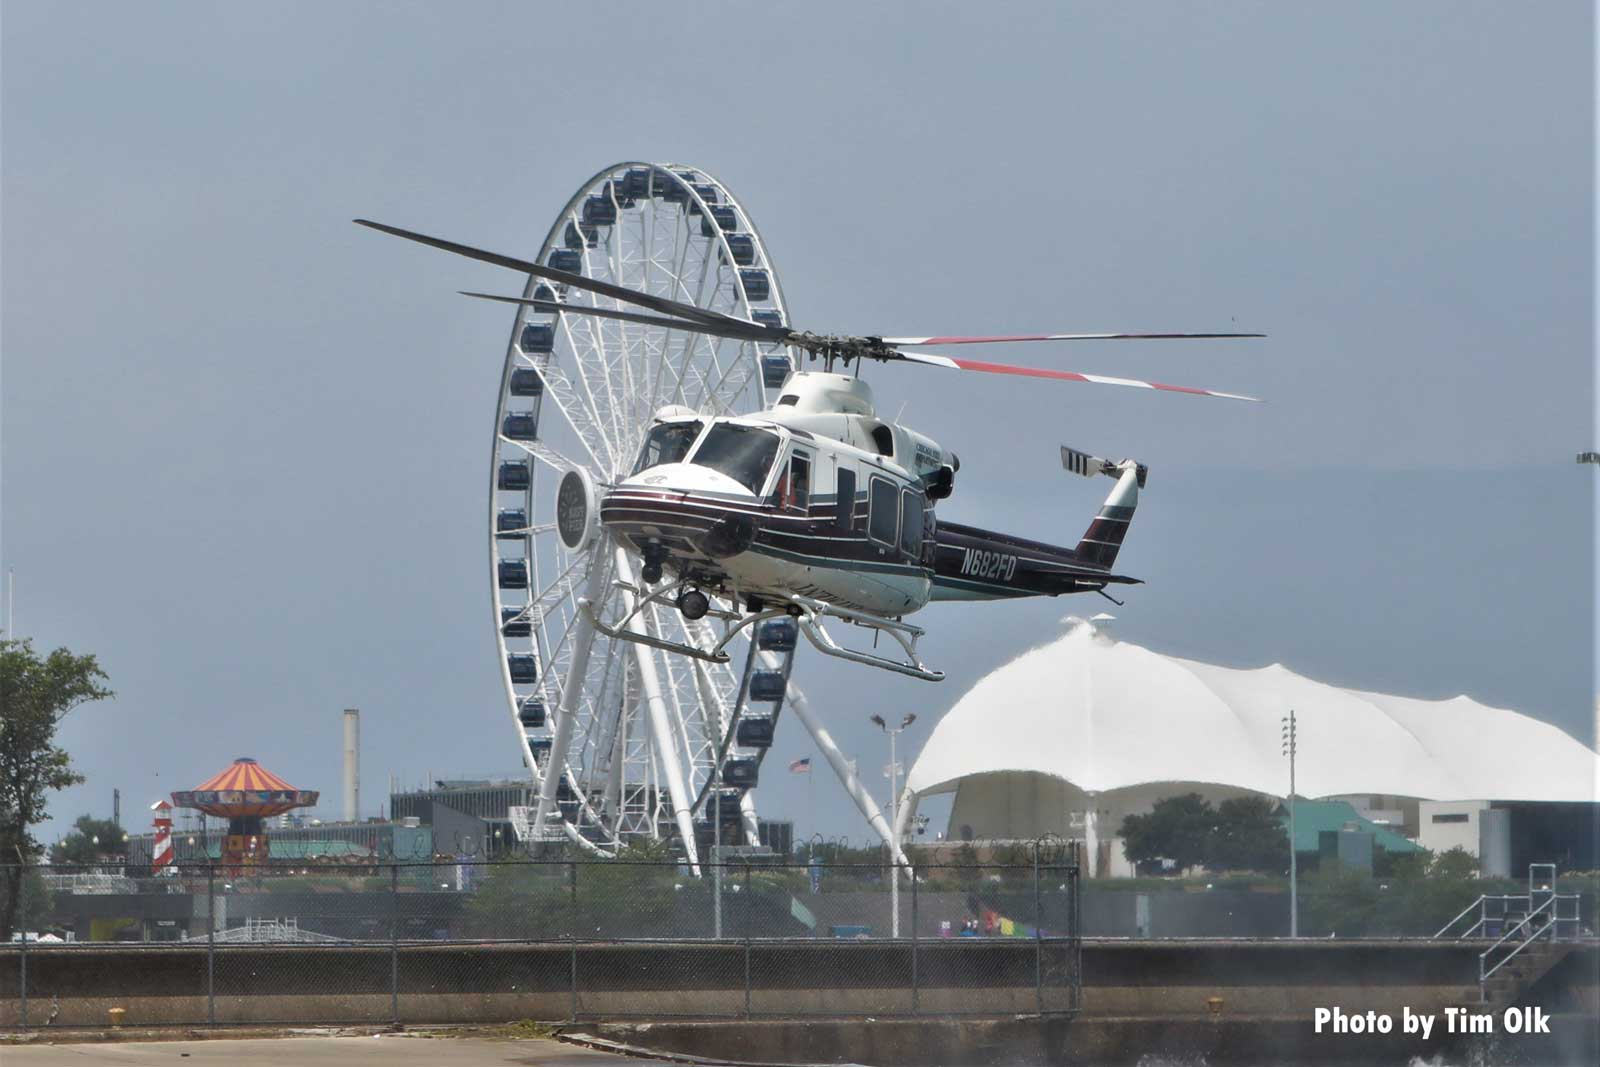 Helicopter with ferris wheel in background